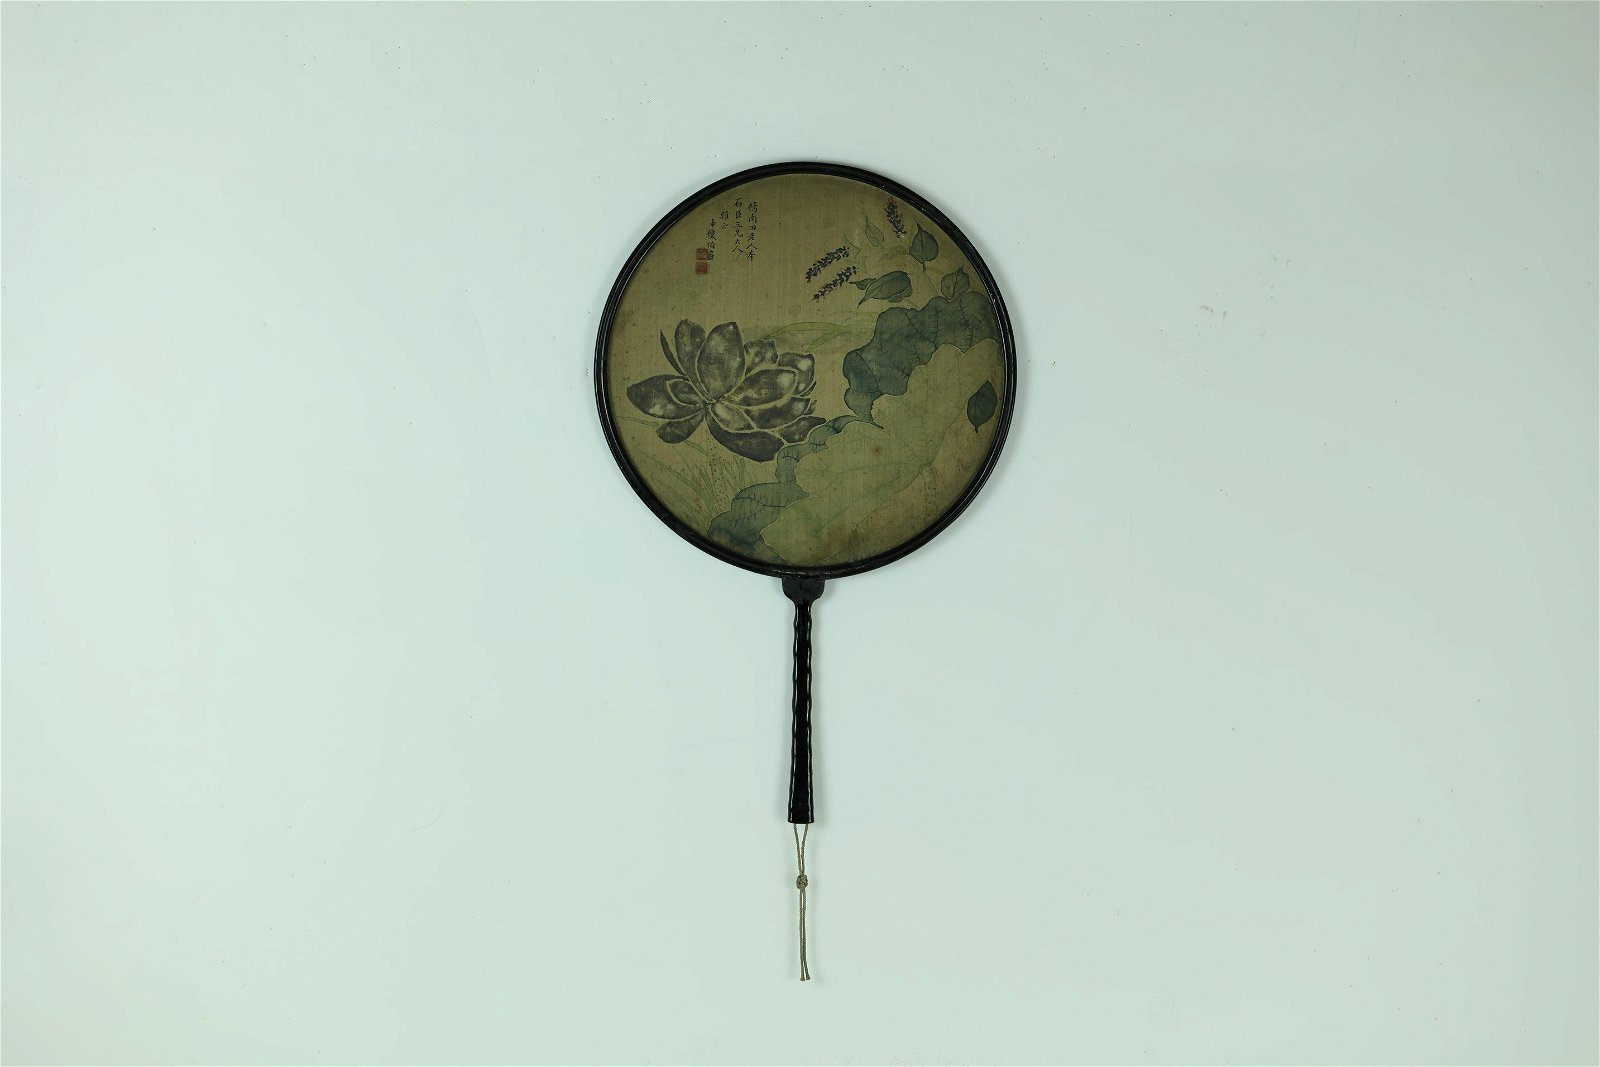 A Lotus Round Shaped Fan by Zhang Yinglin